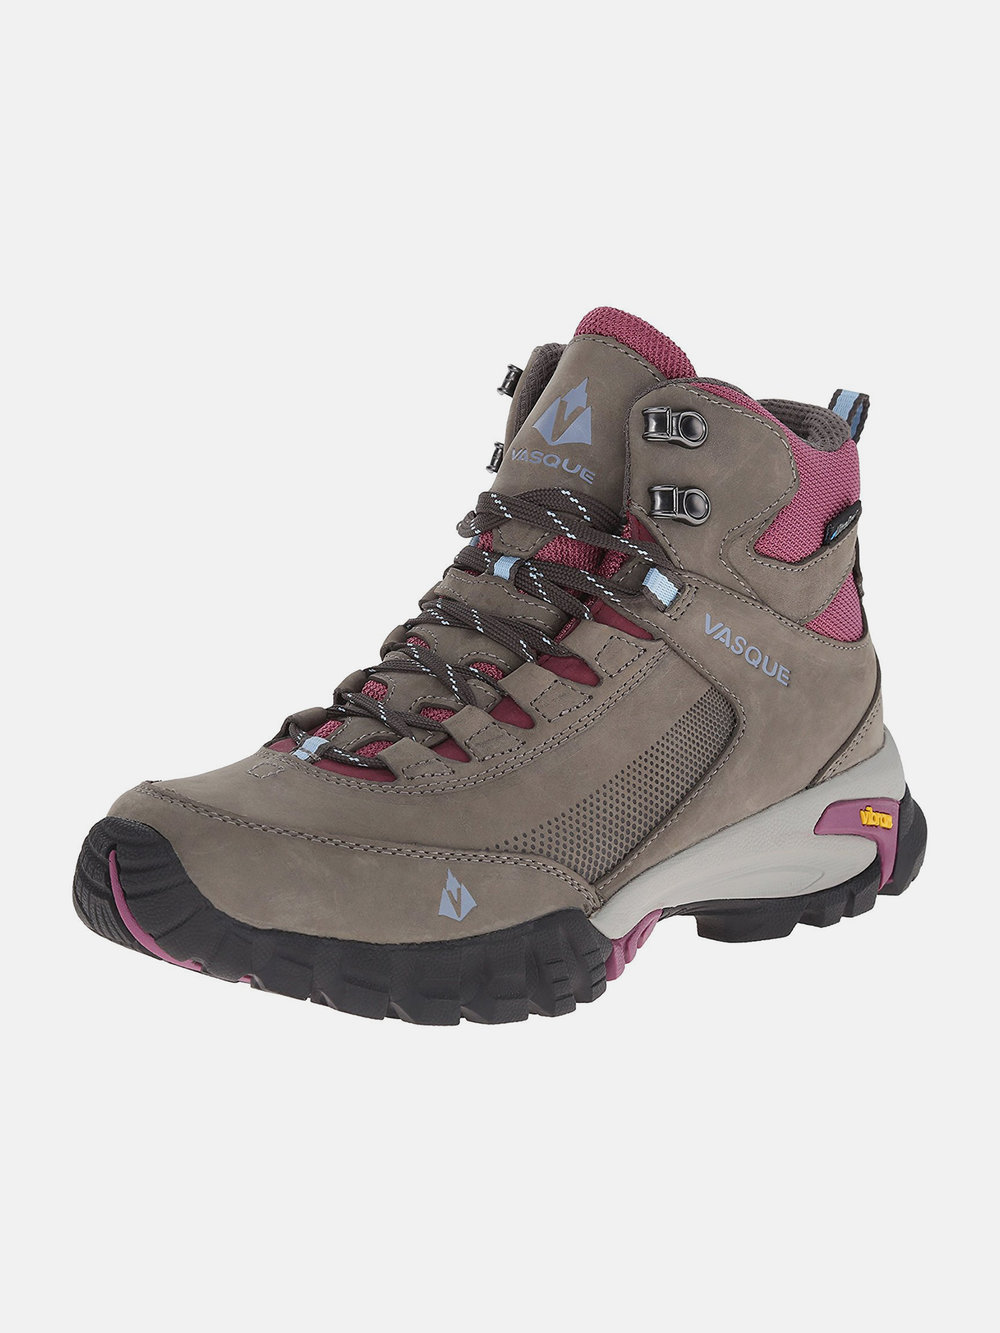 Hiking Boots, $149.99